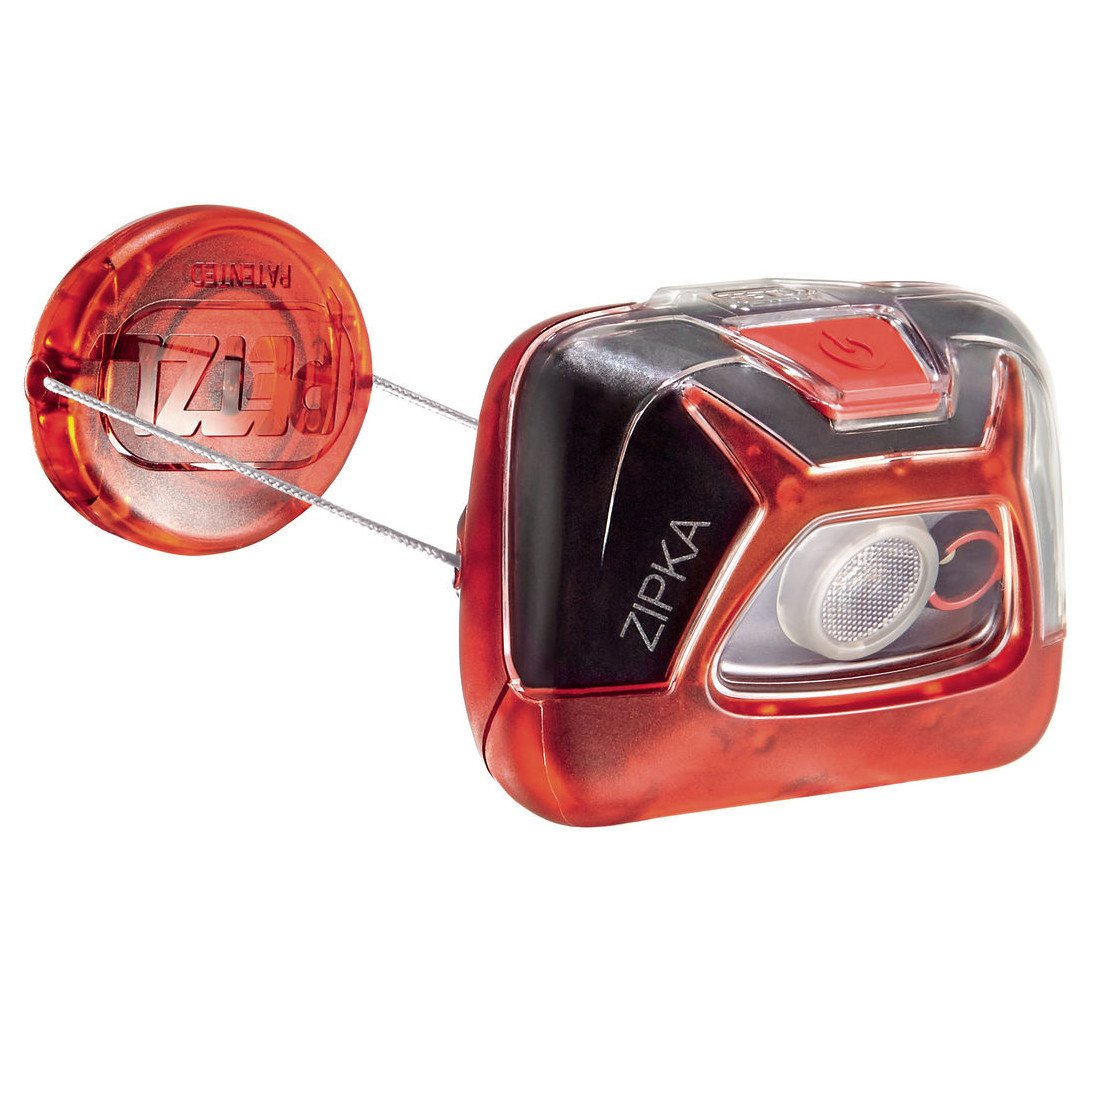 Petzl Zipka Head torch, in red colour